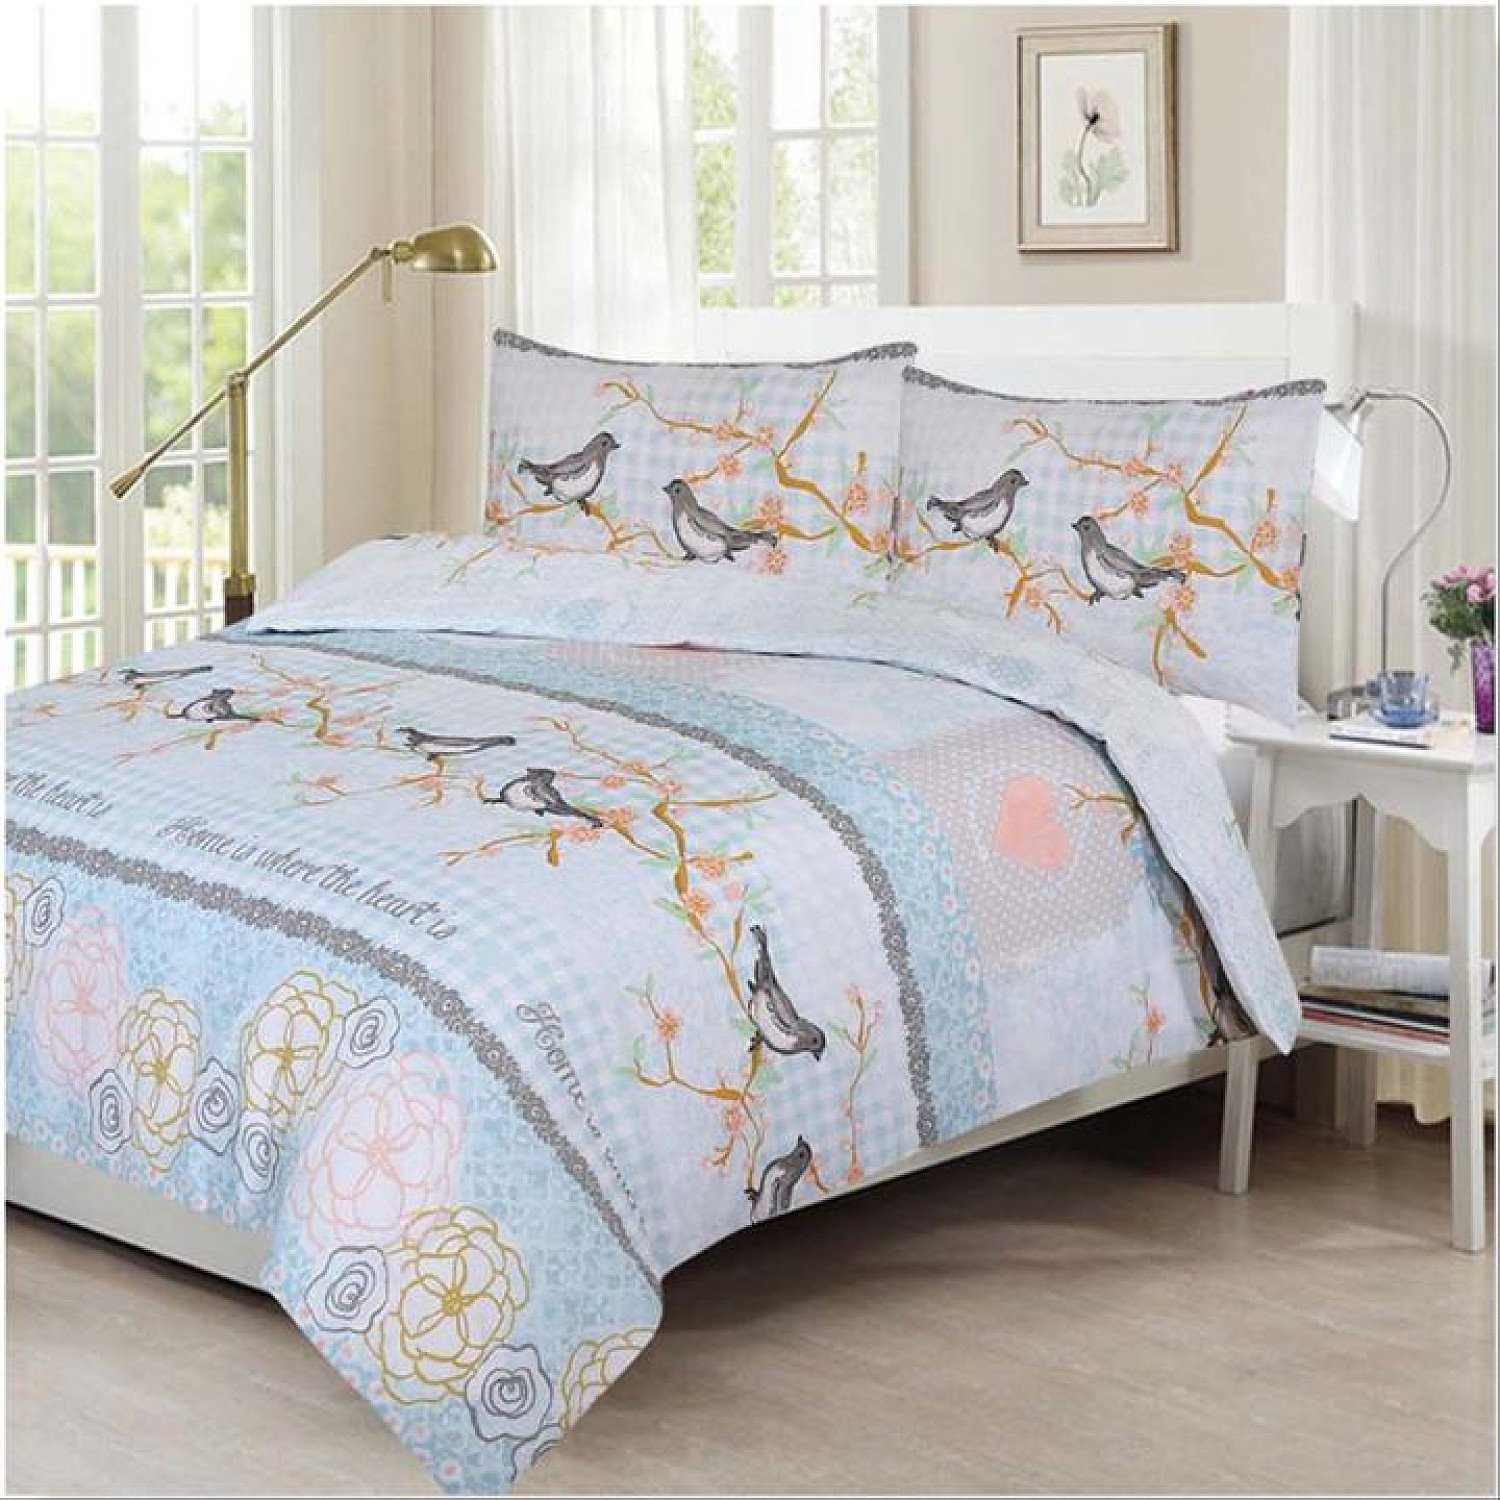 Sweet Birds)) New 100% Polycotton Reversible Printed Design Duvet Quilt Cover with Pillowcases